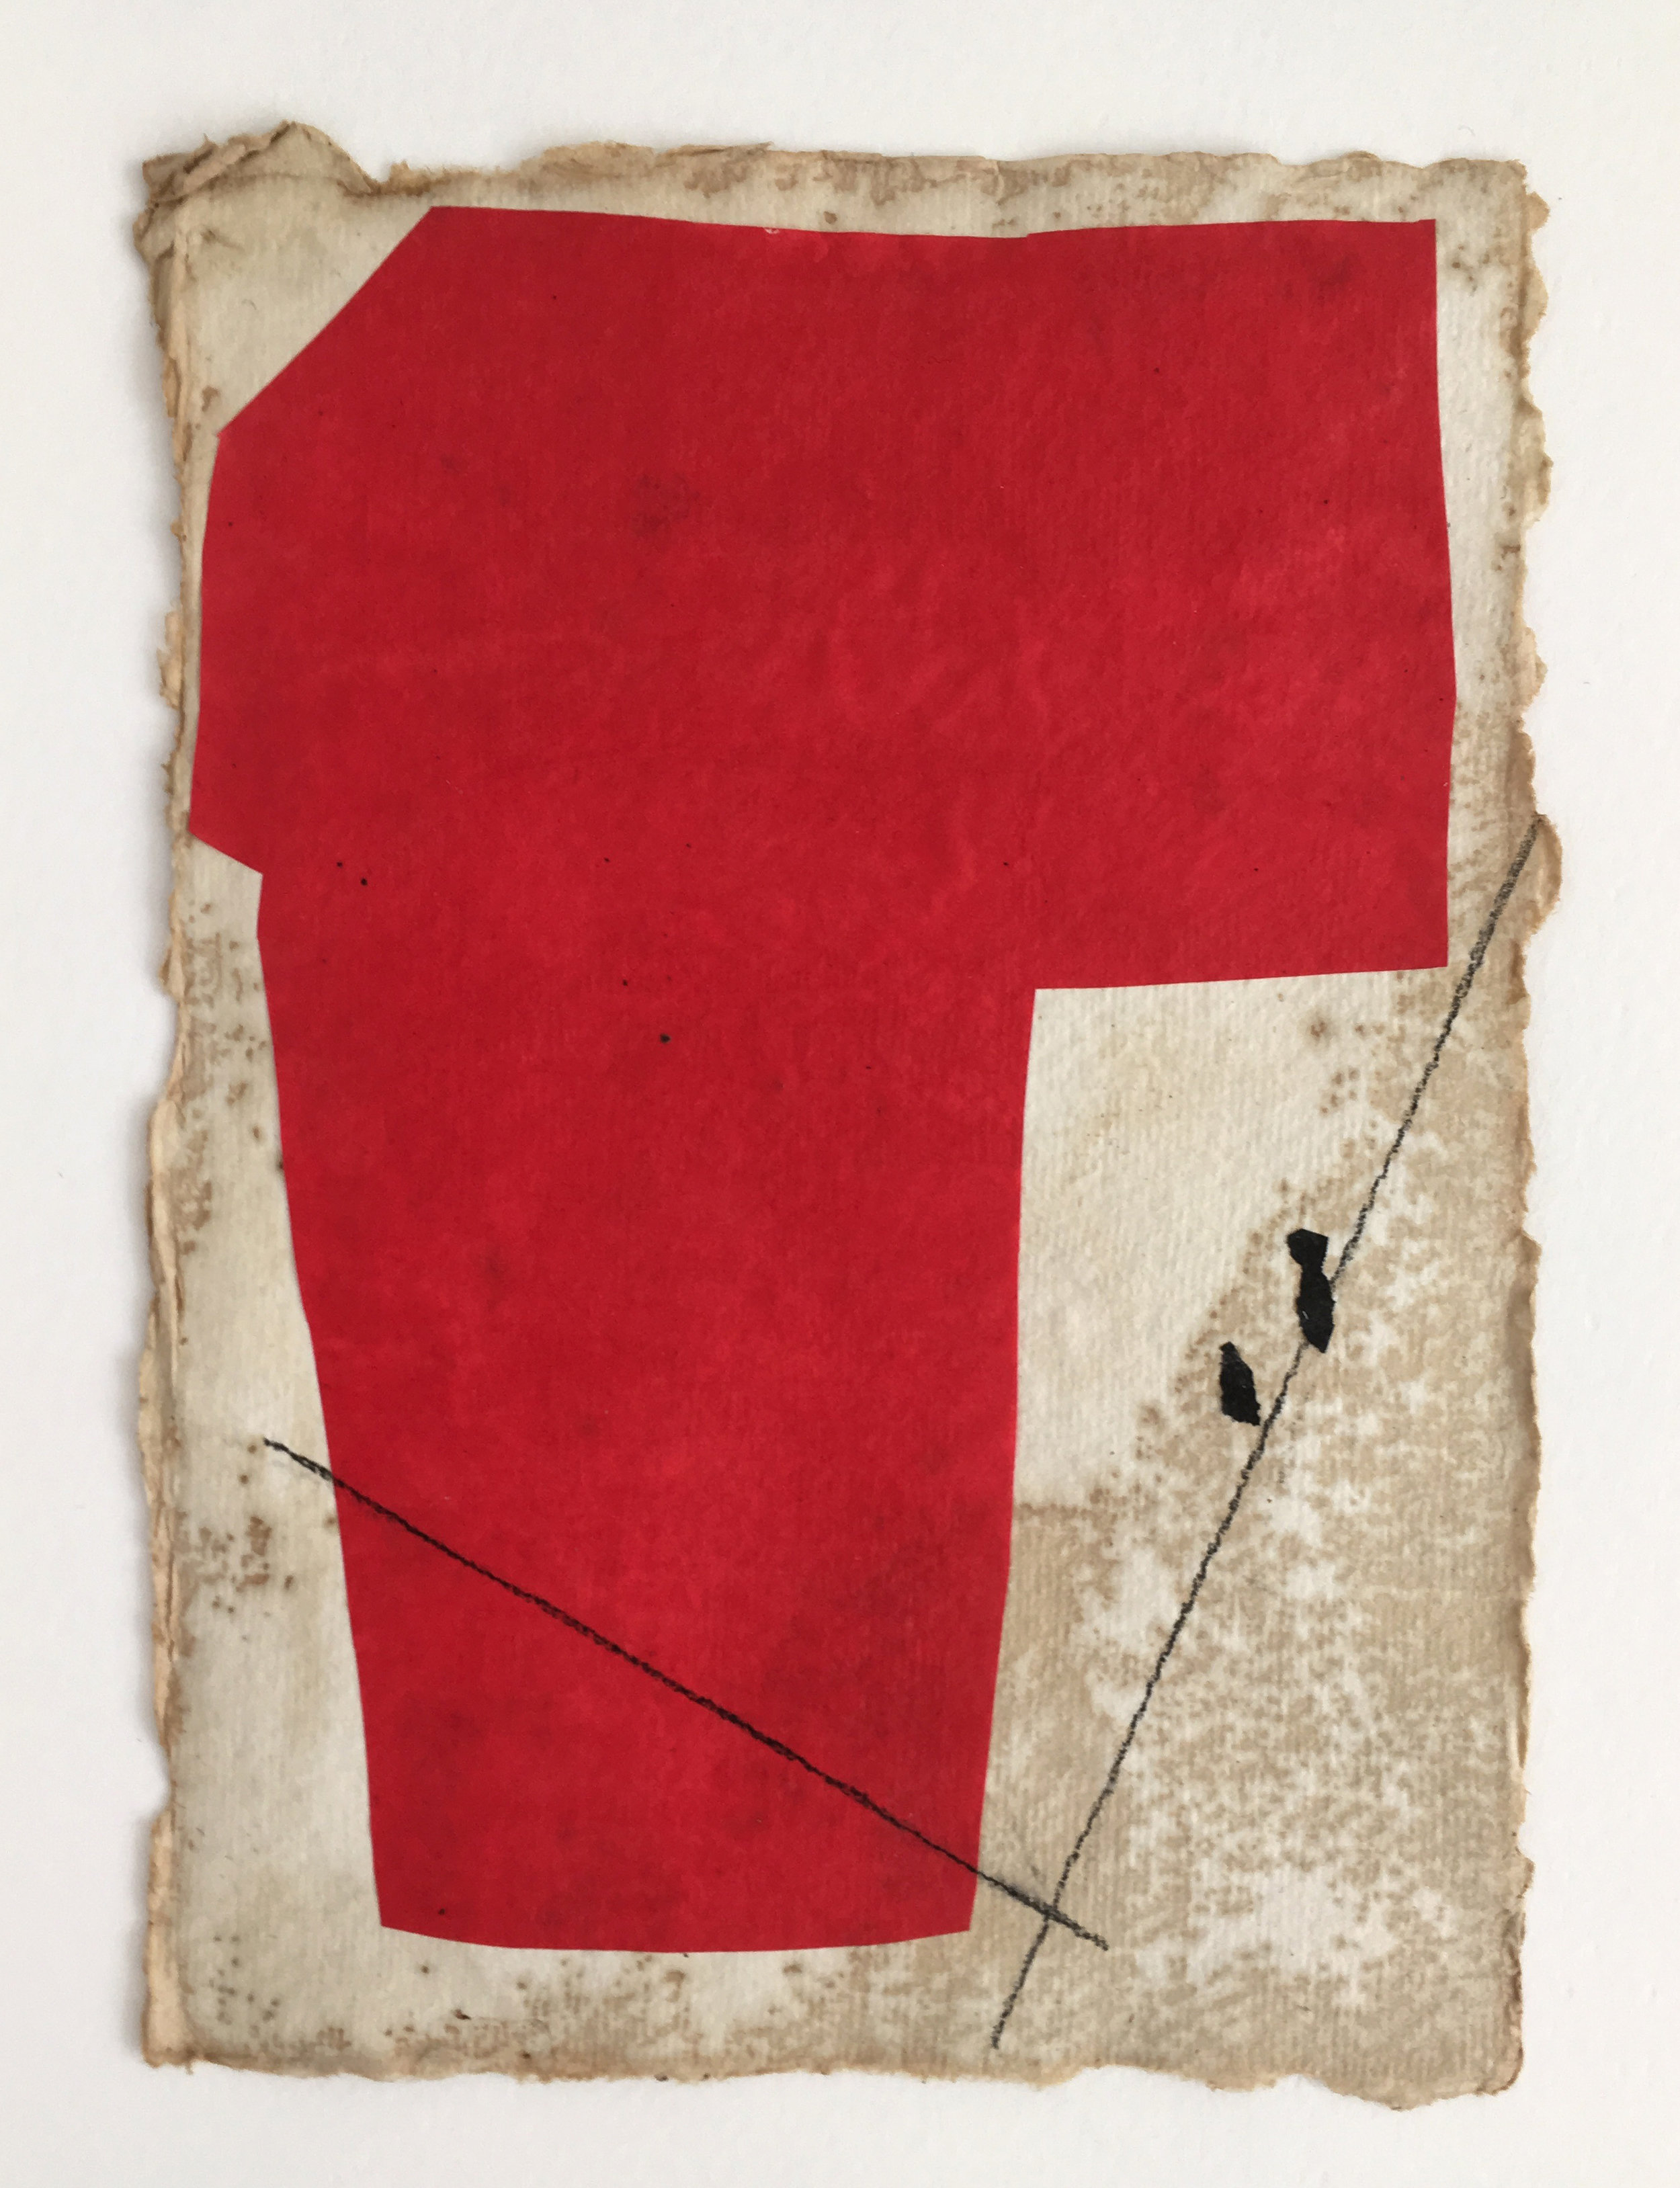 Red Form on Tan with Black Lines and Flecks, 2018, mixed media on coffee-dyed watercolor paper, 8 1/4 x 6 1/4 in, $250